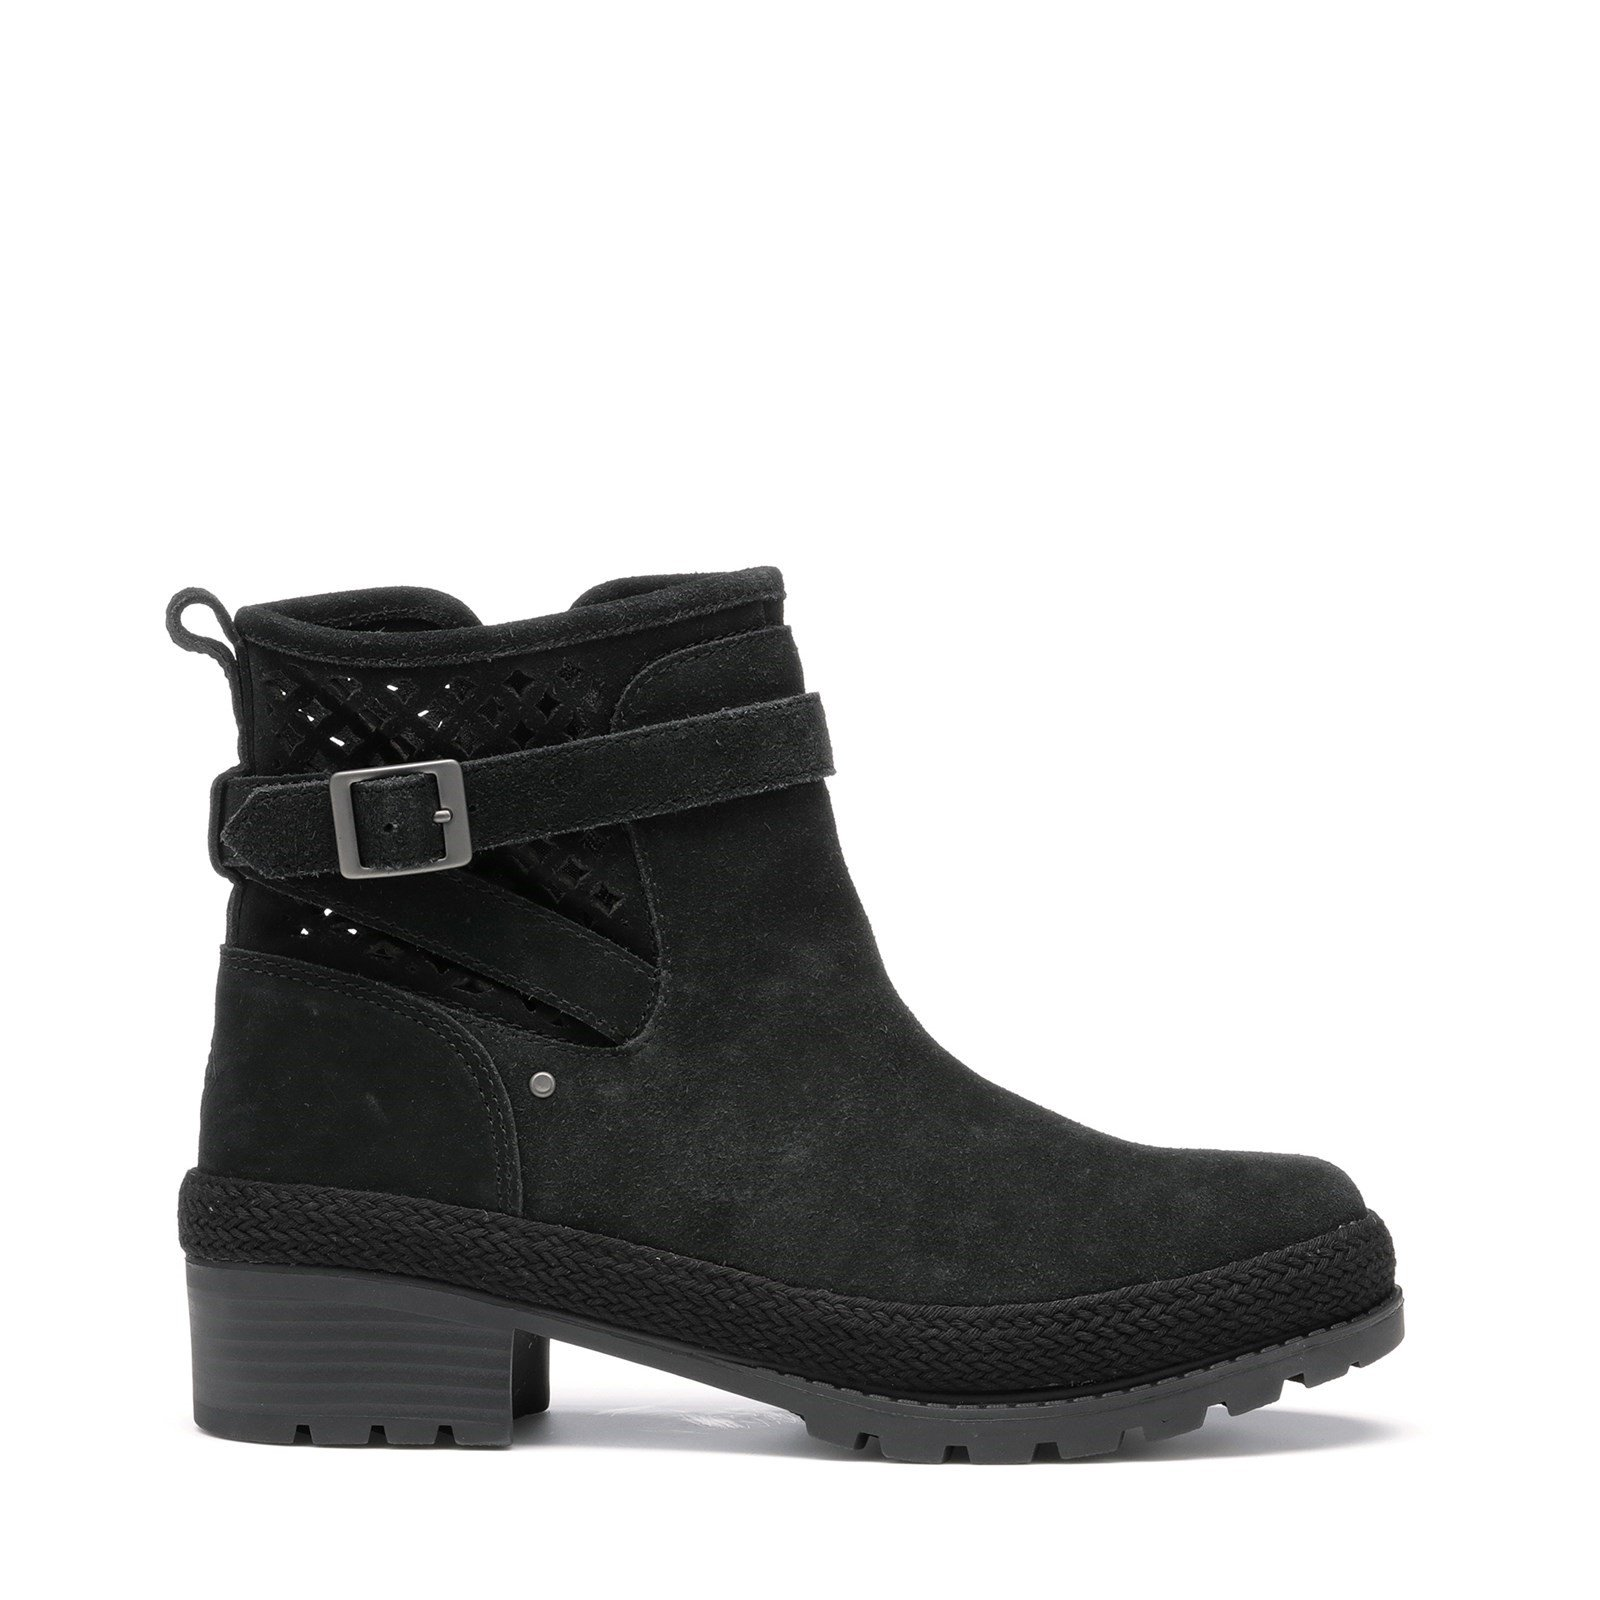 Muck Boots Women's Liberty Perforated Leather Boots Various Colours 31814 - Black 7.5